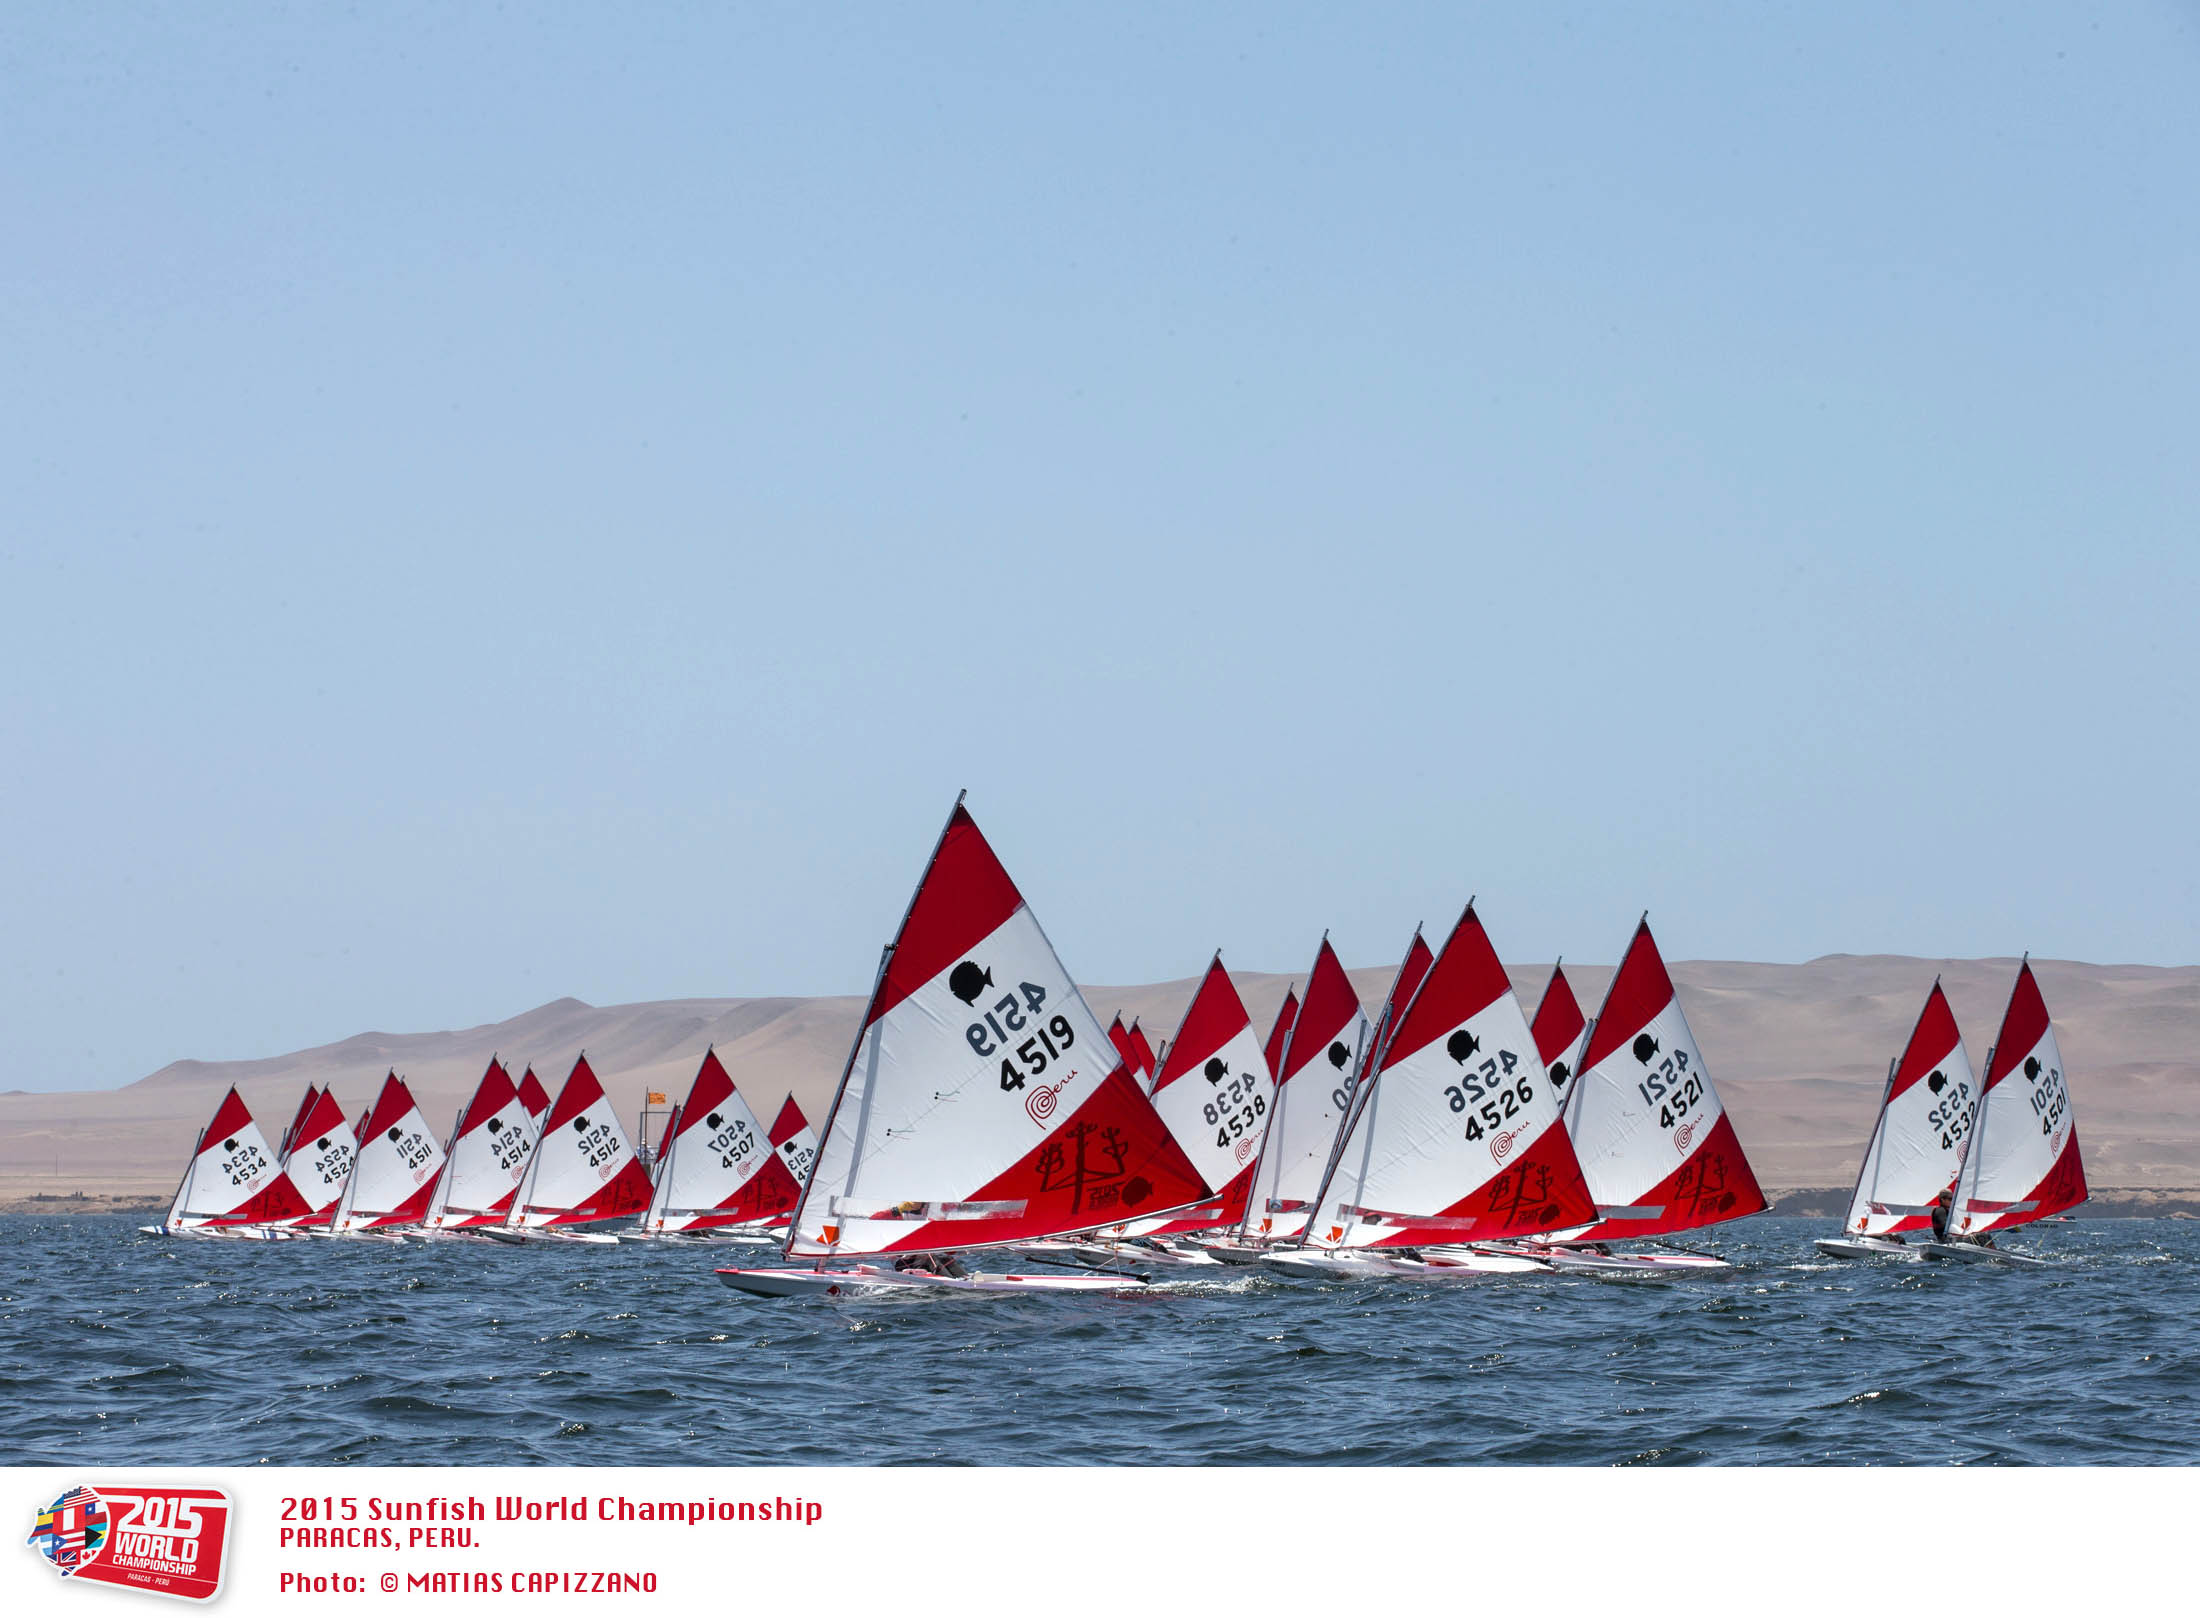 2015 Youth Worlds - Paracas, Peru